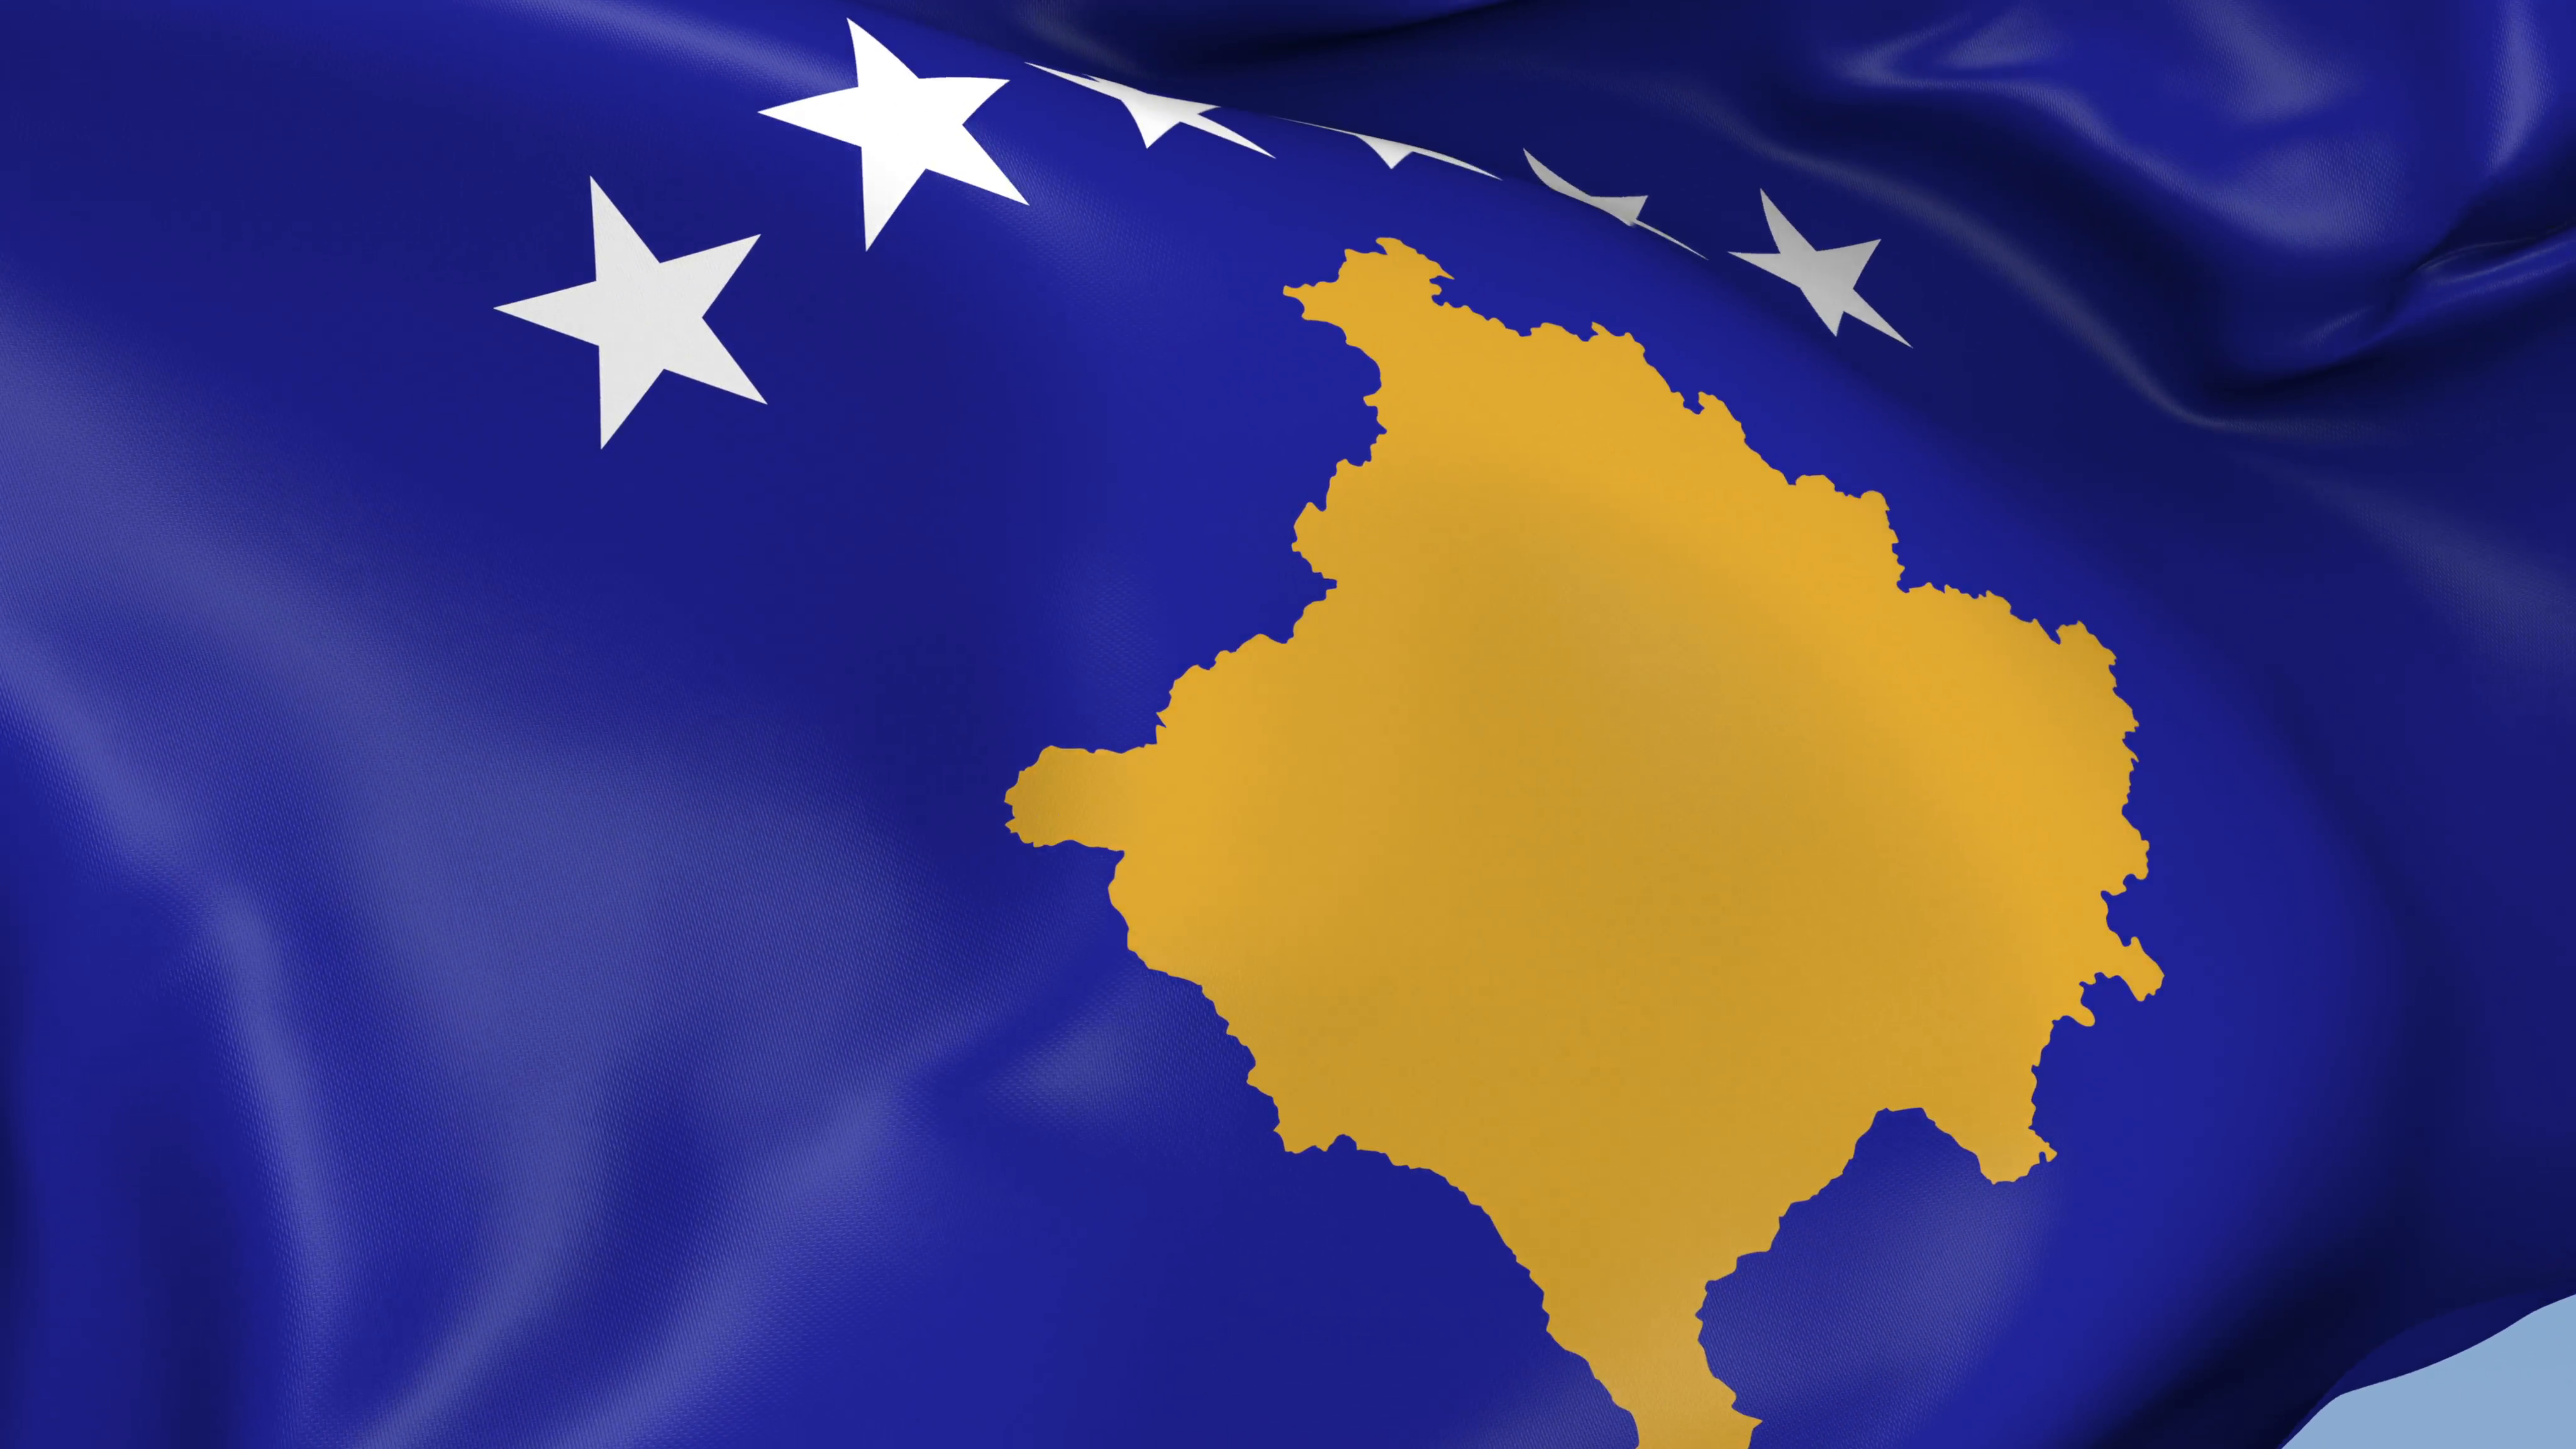 Kosovo, problema strategica in Balcani